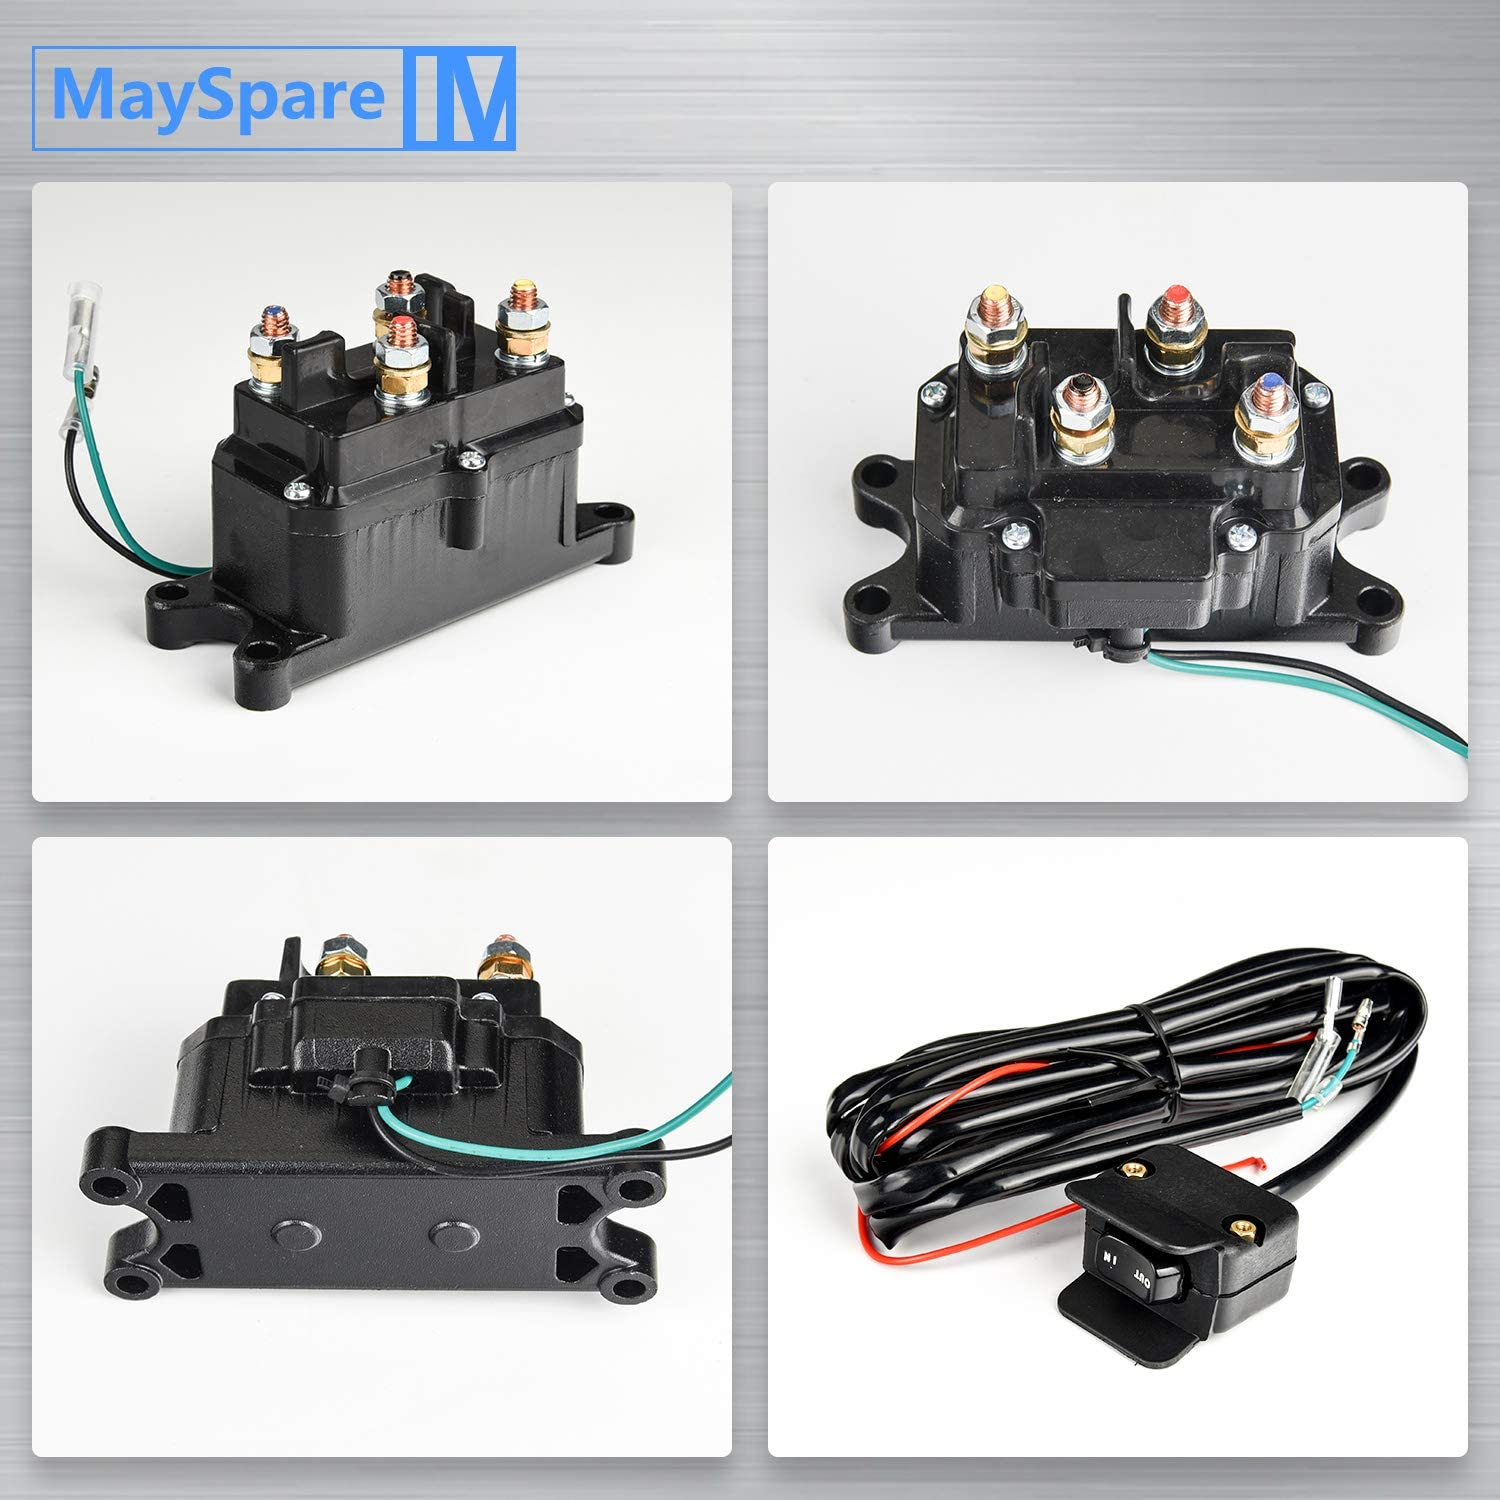 MaySpare 250A Solenoid Relay Contactor /& Winch Rocker Thumb Switch Combo with Mounting Brackets Terminal Caps for ATV UTV 1500lb-5000lb